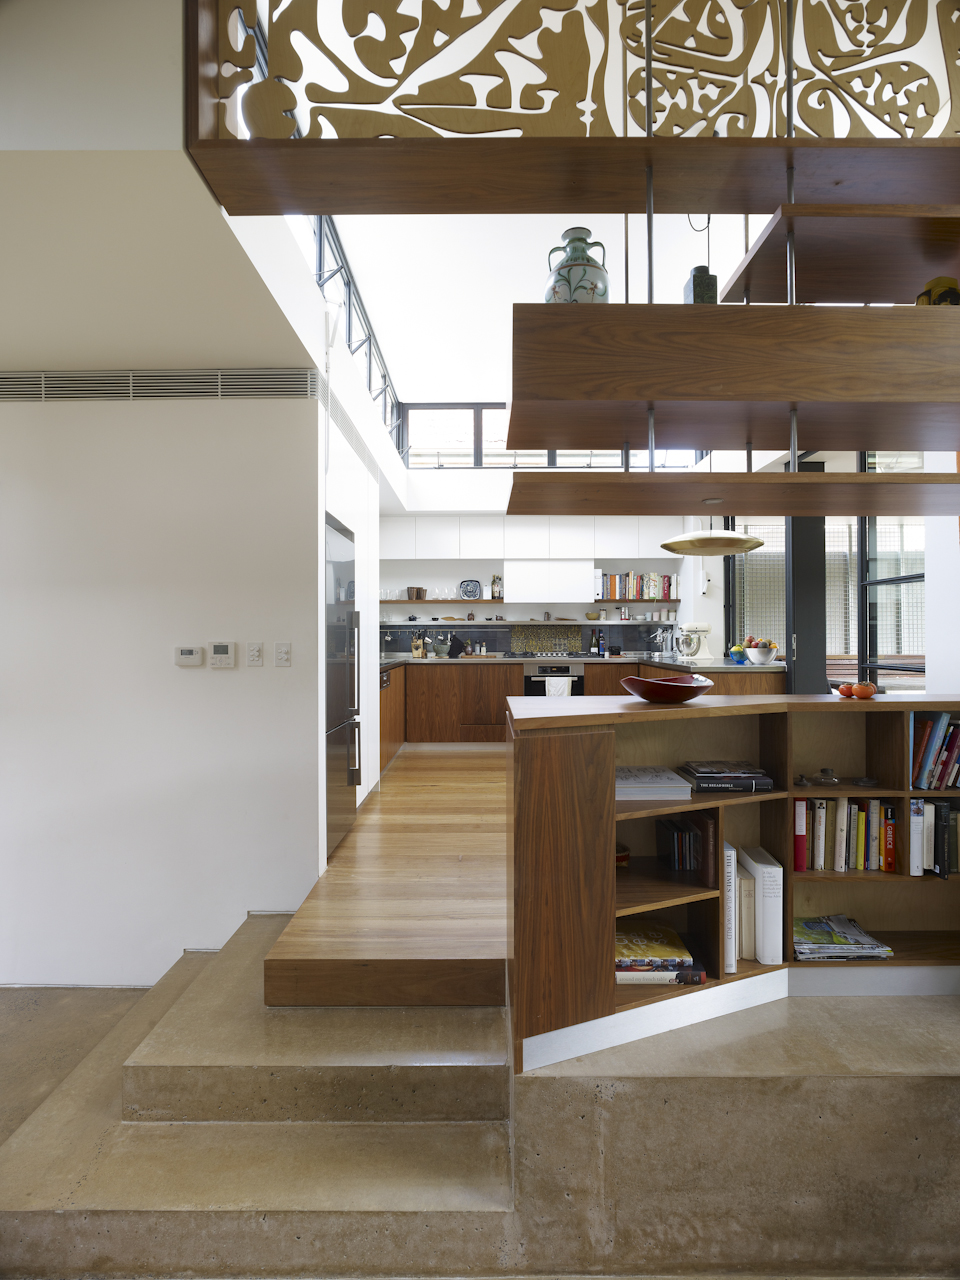 SamCrawfordArchitects_PetershamHouse_144110.jpg